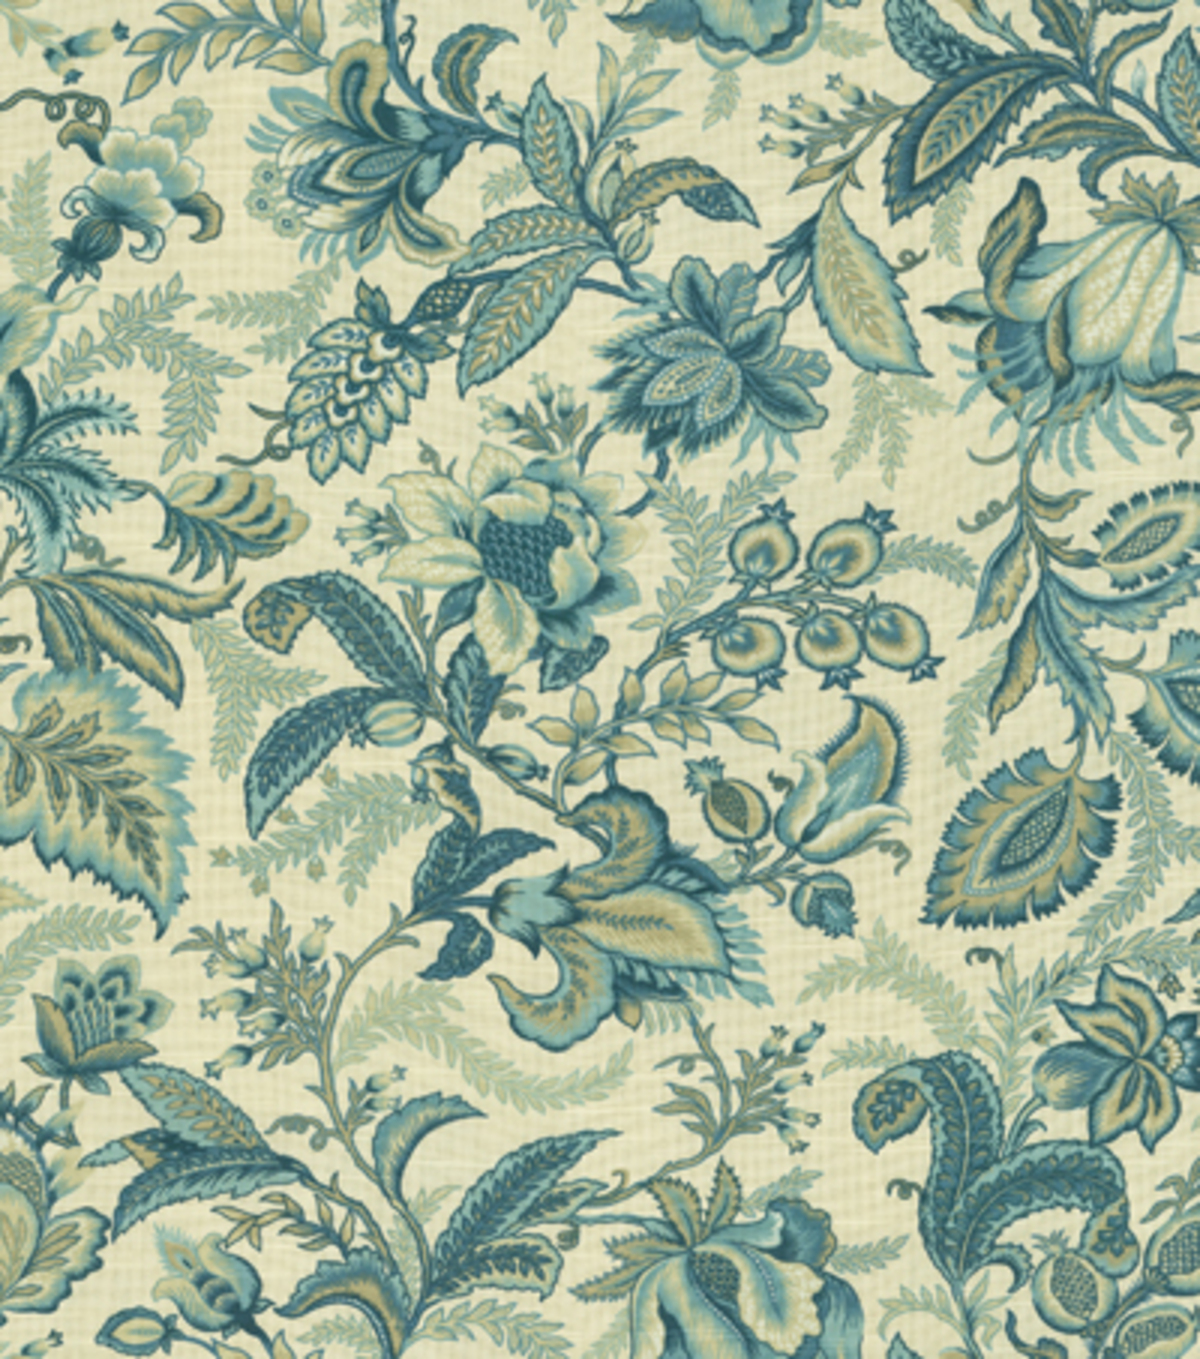 Better homes gardens multi purpose decor fabric 54u0022 wicklow indigo